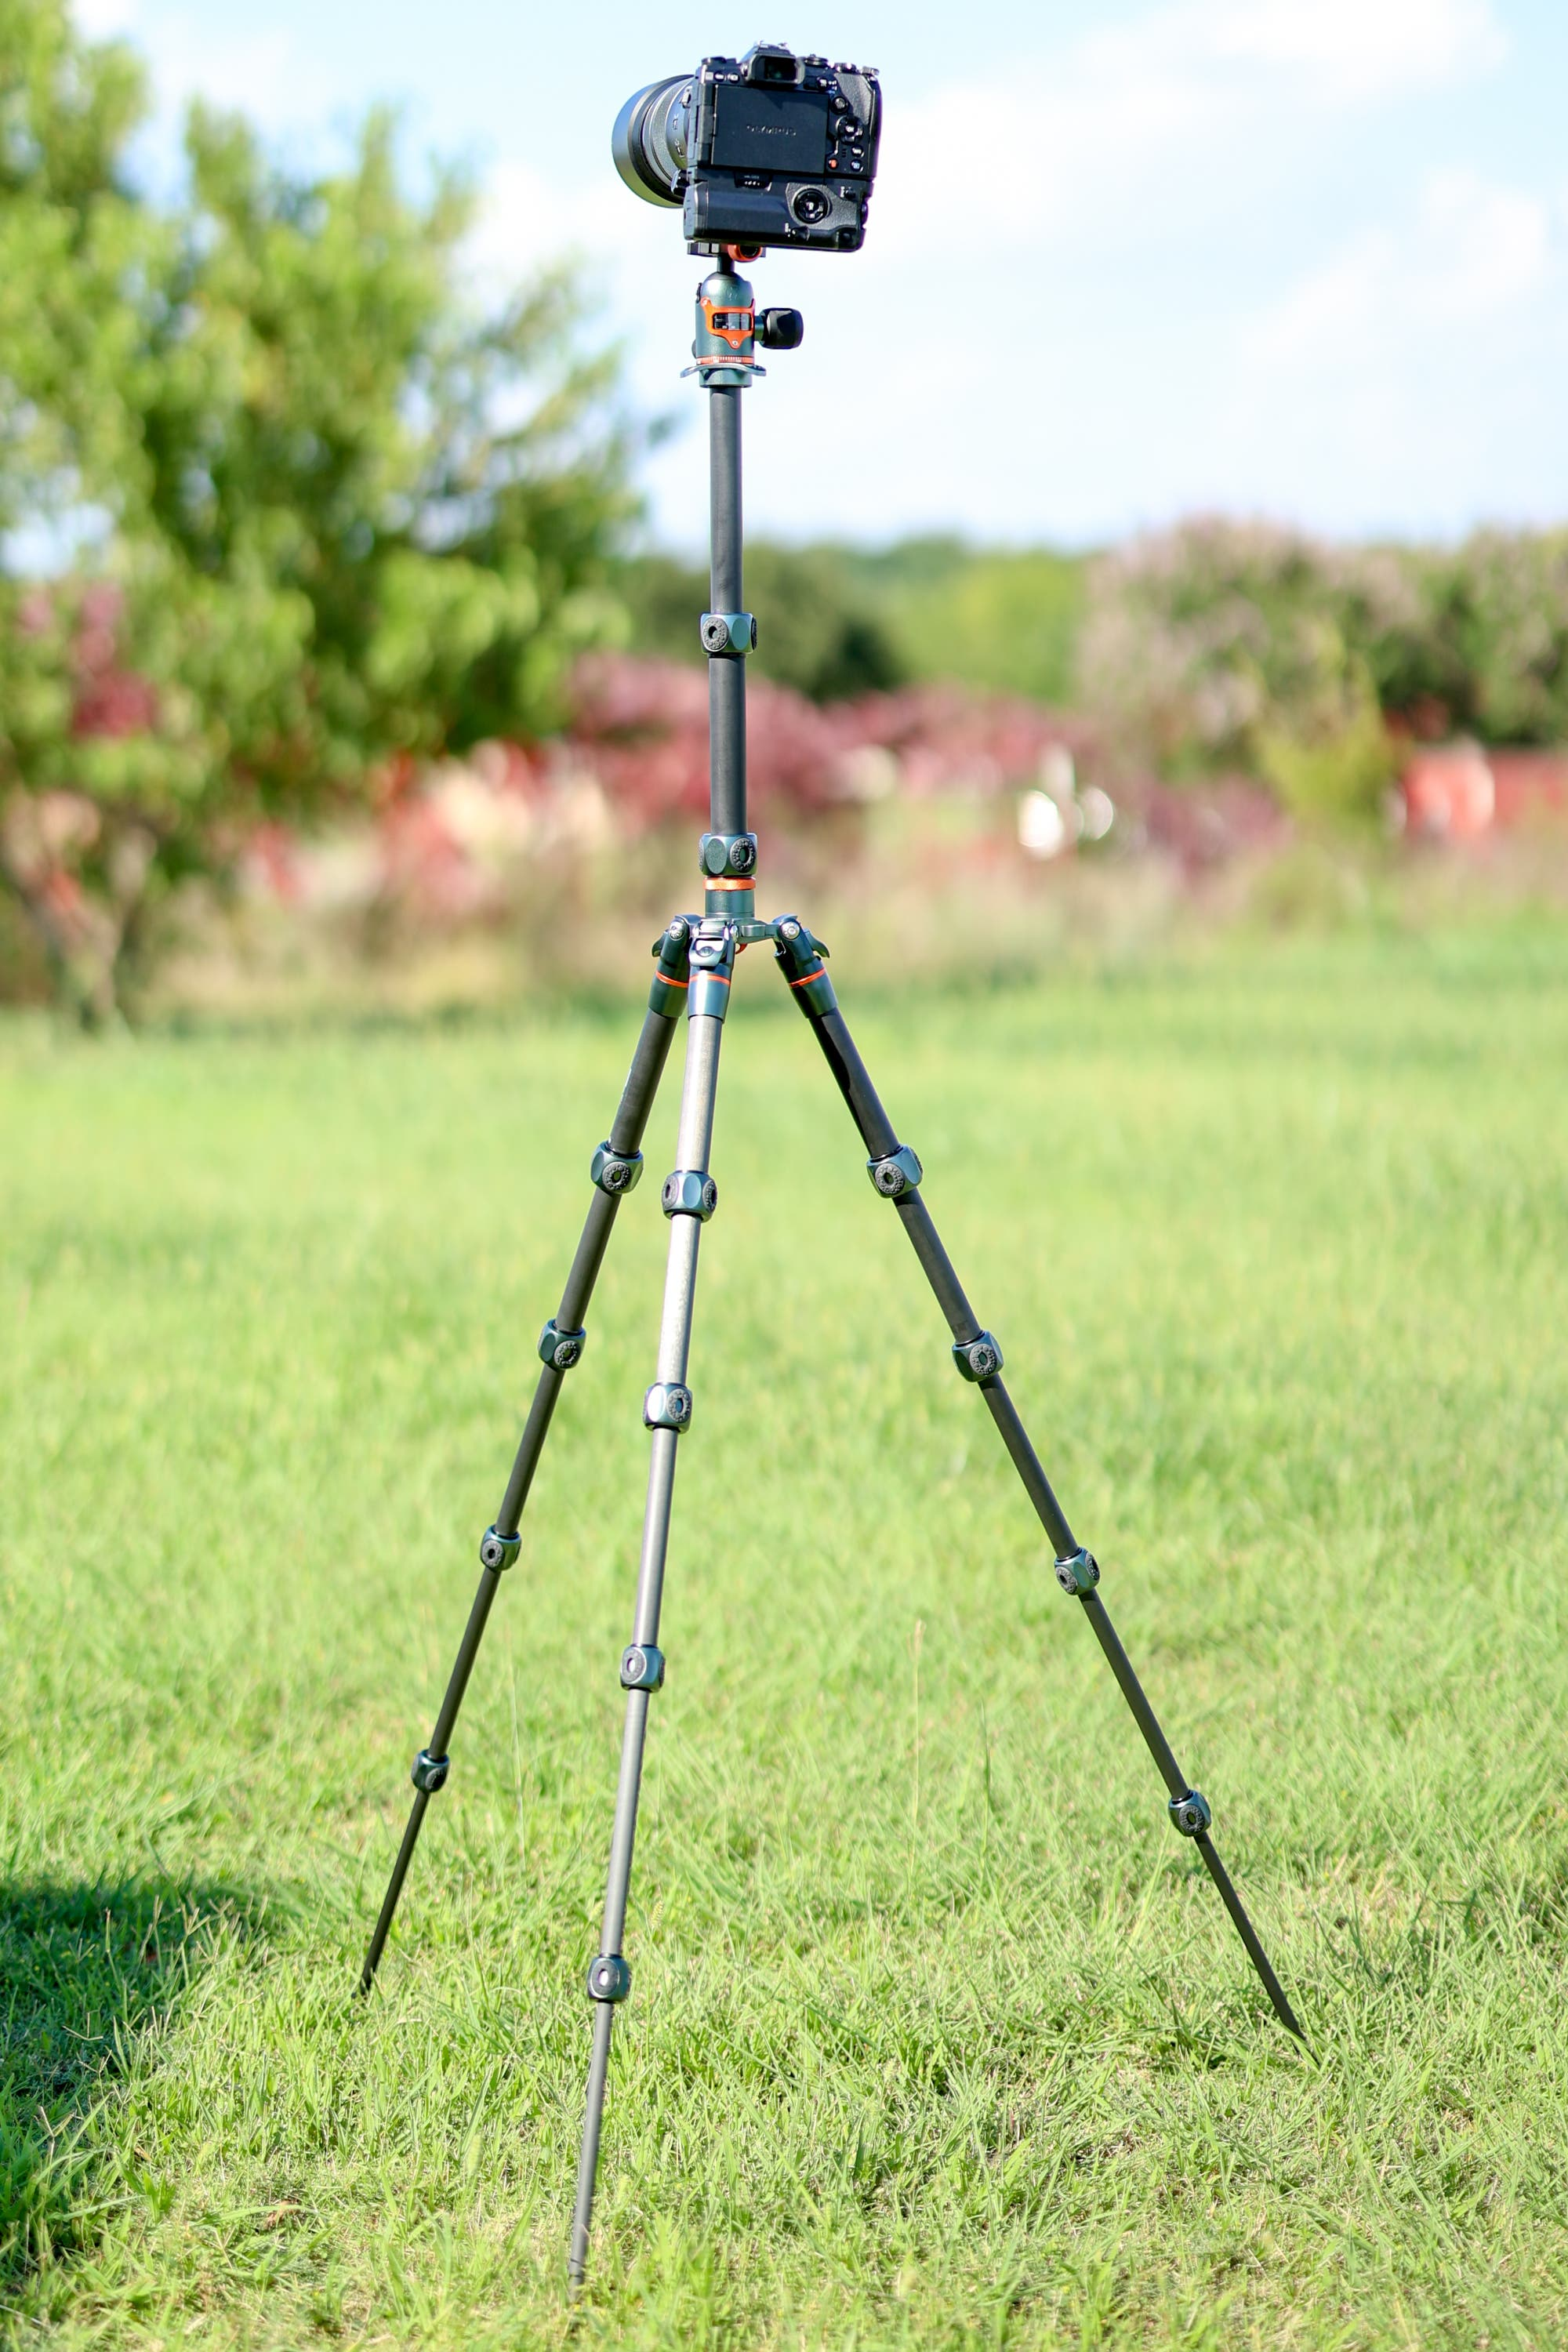 Who Knew Tripods Could Be Cool? The 3 Legged Thing Ray Tripod Is